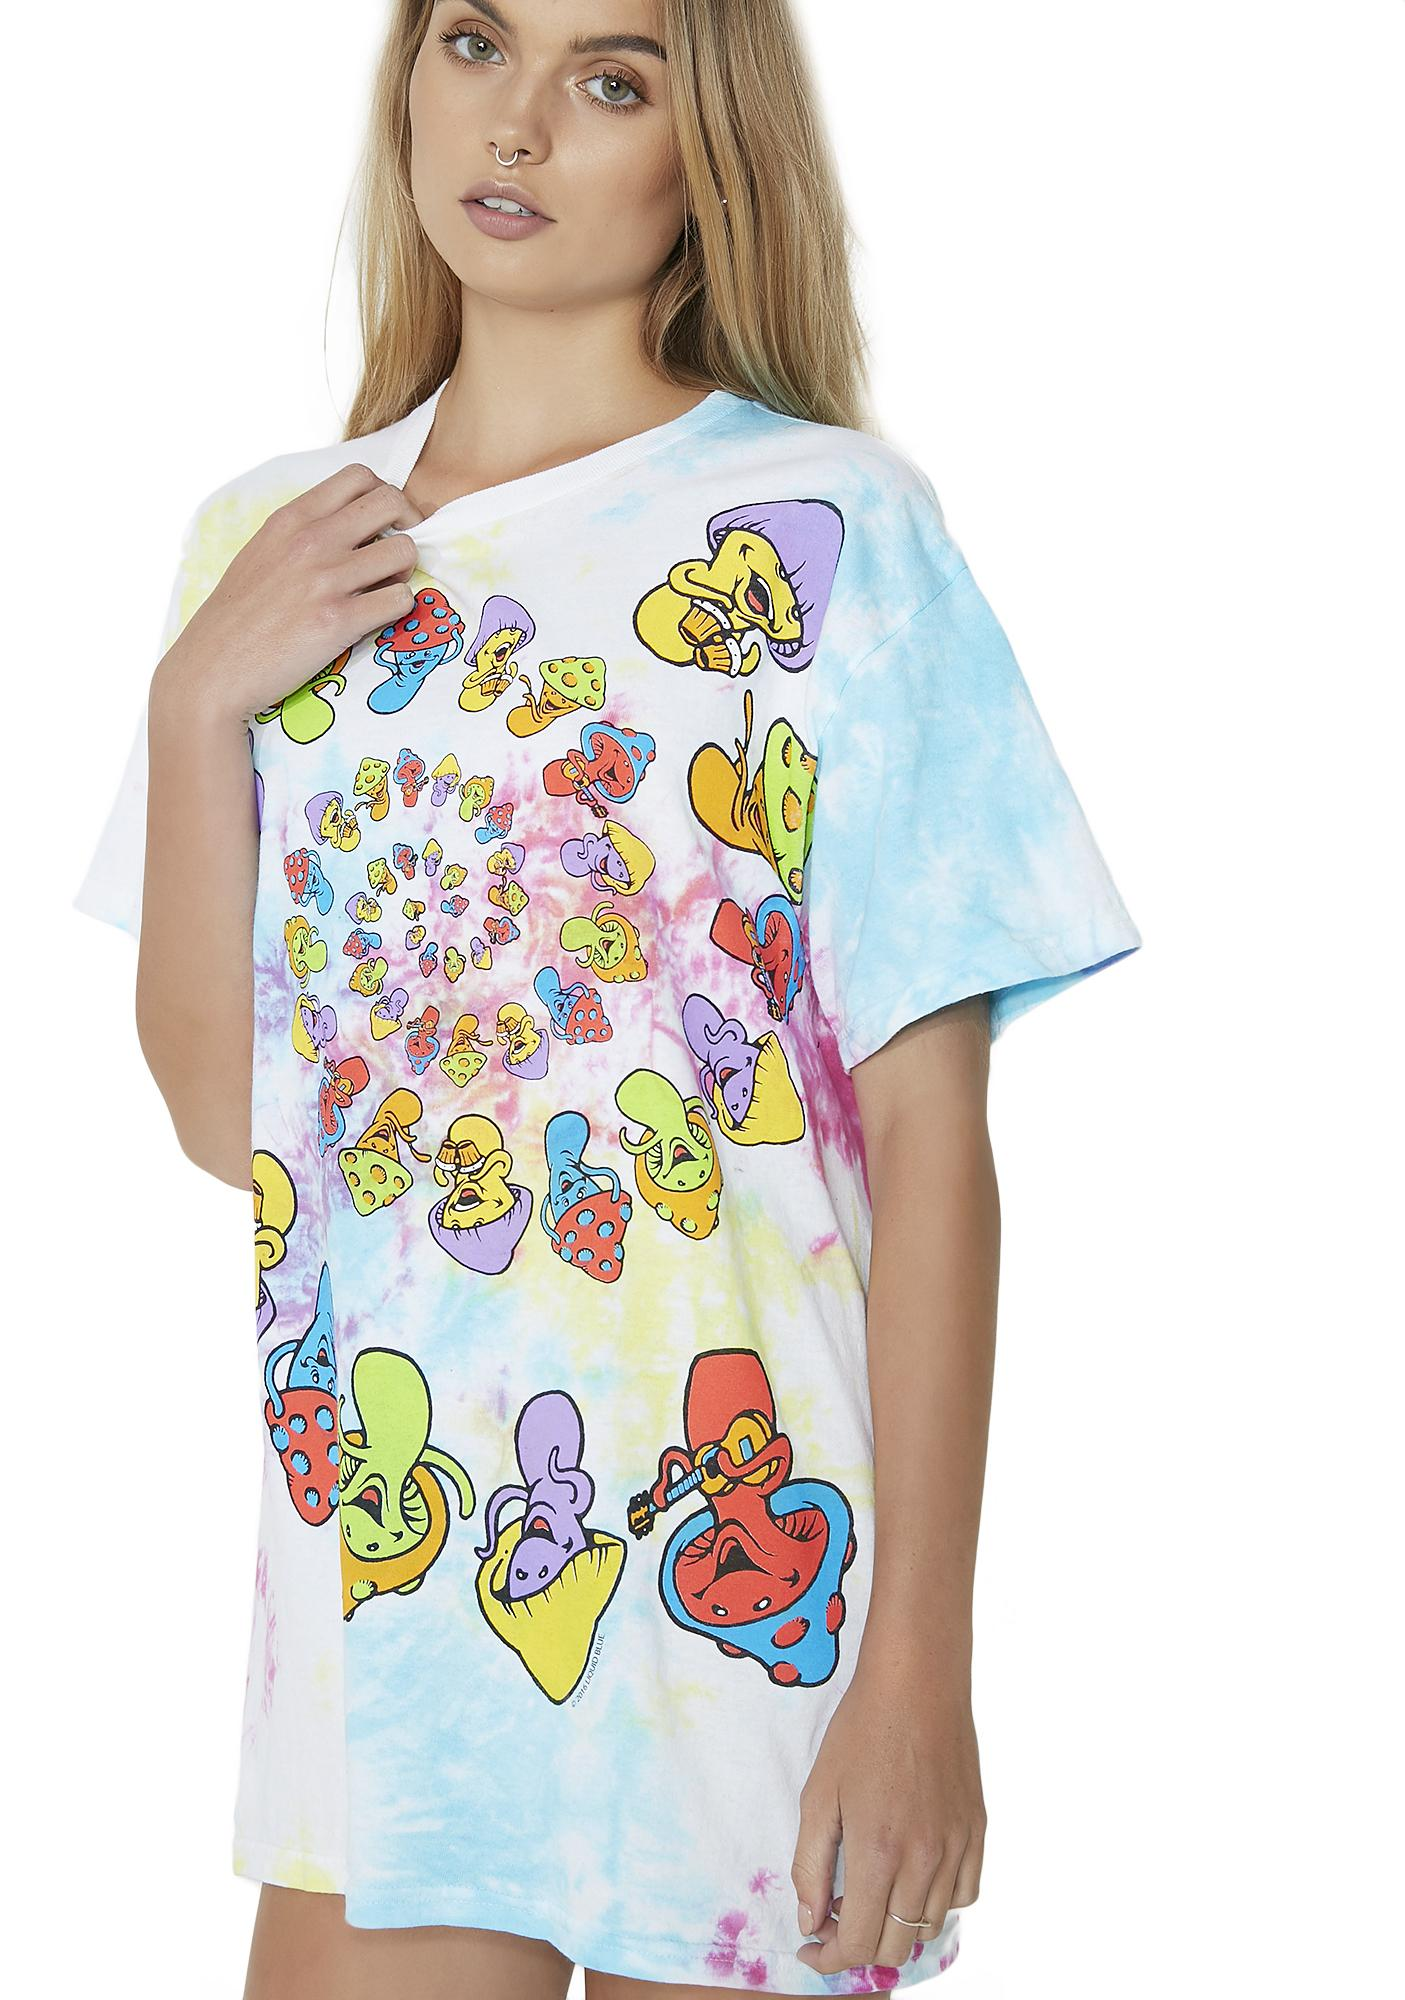 Melody Madness Graphic Tee